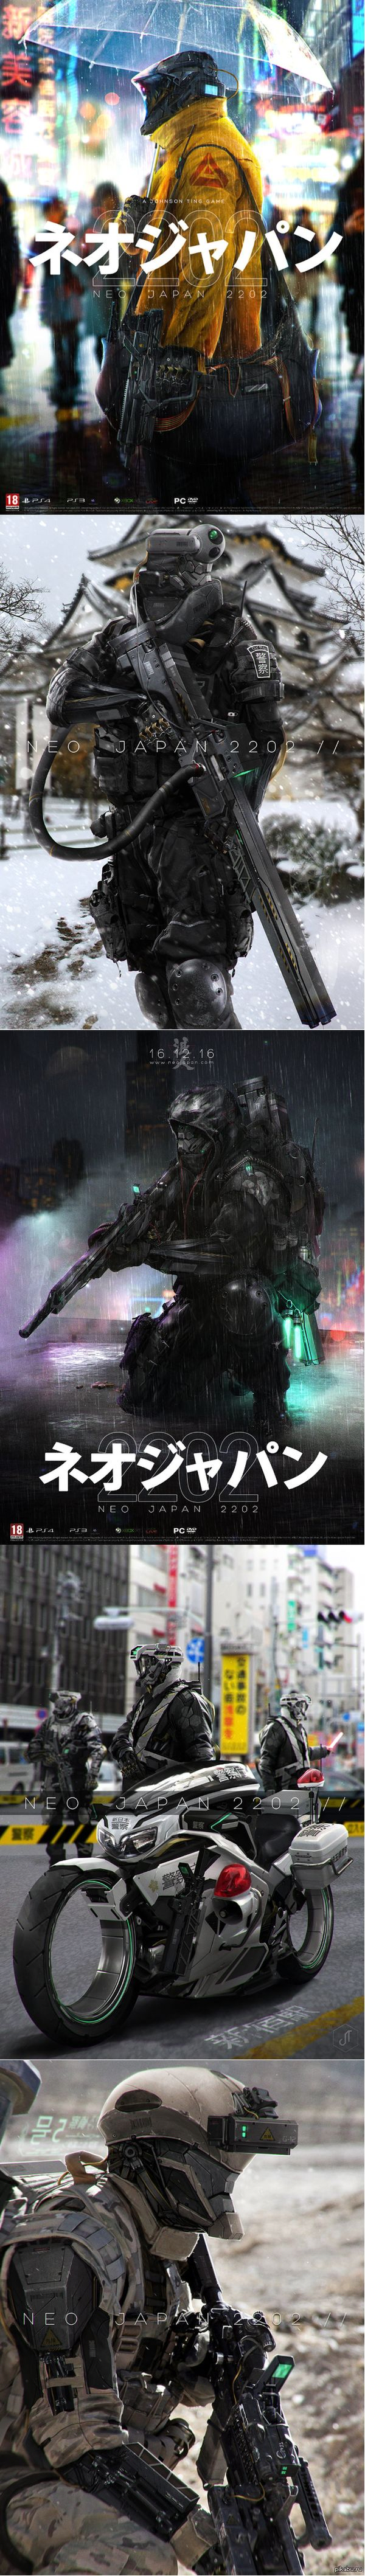 NEO JAPAN 2202 by Johnsonting deviant art. http://johnsonting.deviantart.com/art/NEO-JAPAN-2202-KIKAI-YOHEI-436385738